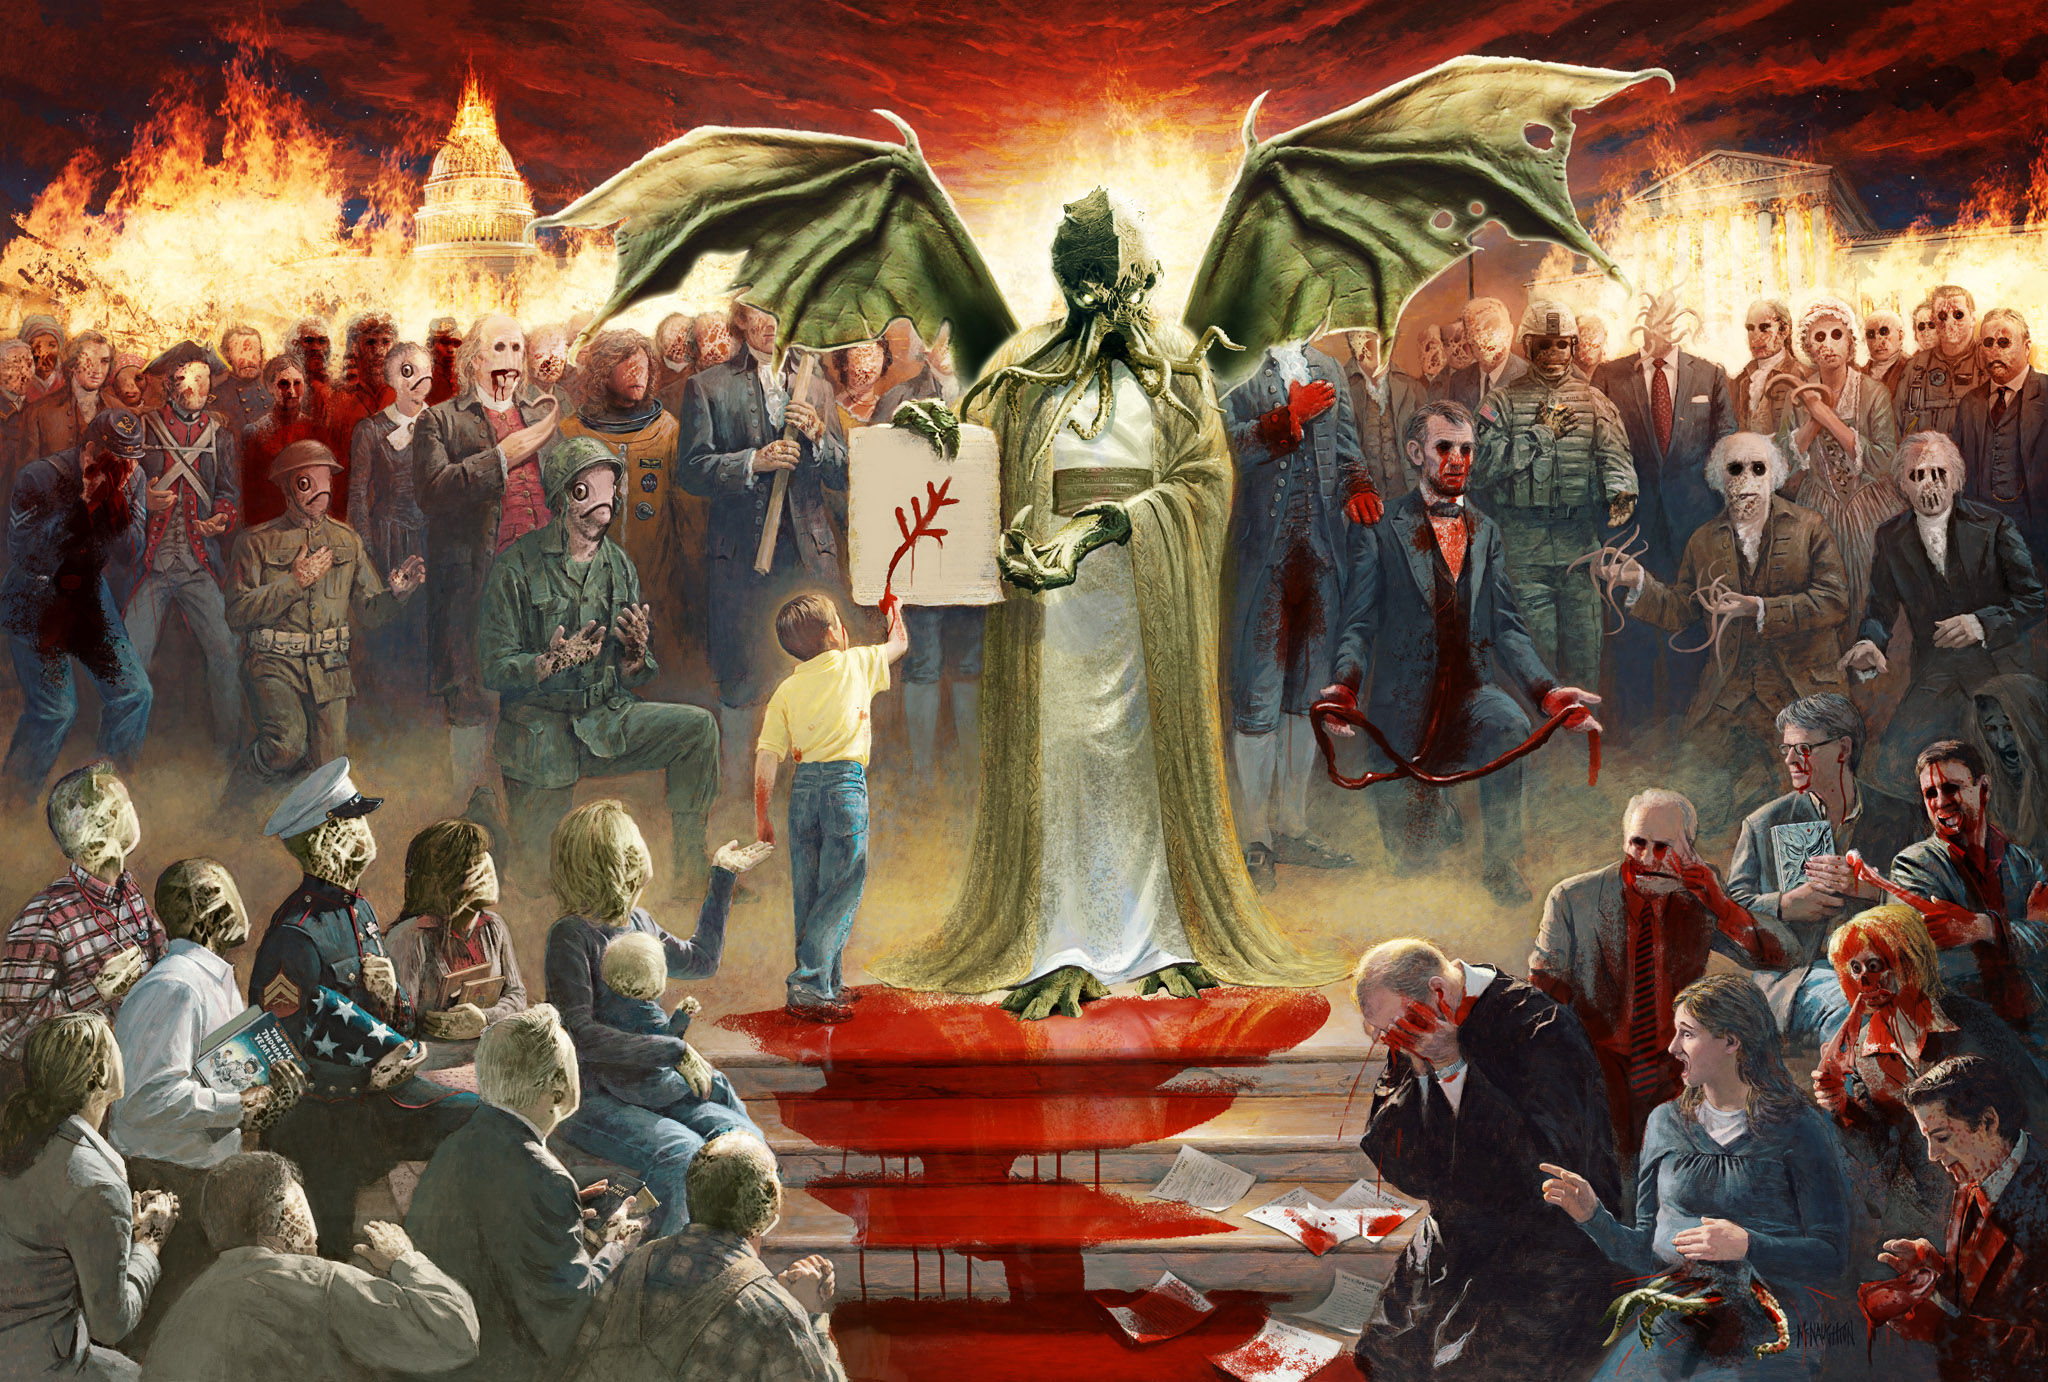 One nation under Cthulhu Mcnaughton-fine-art-one-nation-under-god-parody-jesus-cthulhu-blood-monsters